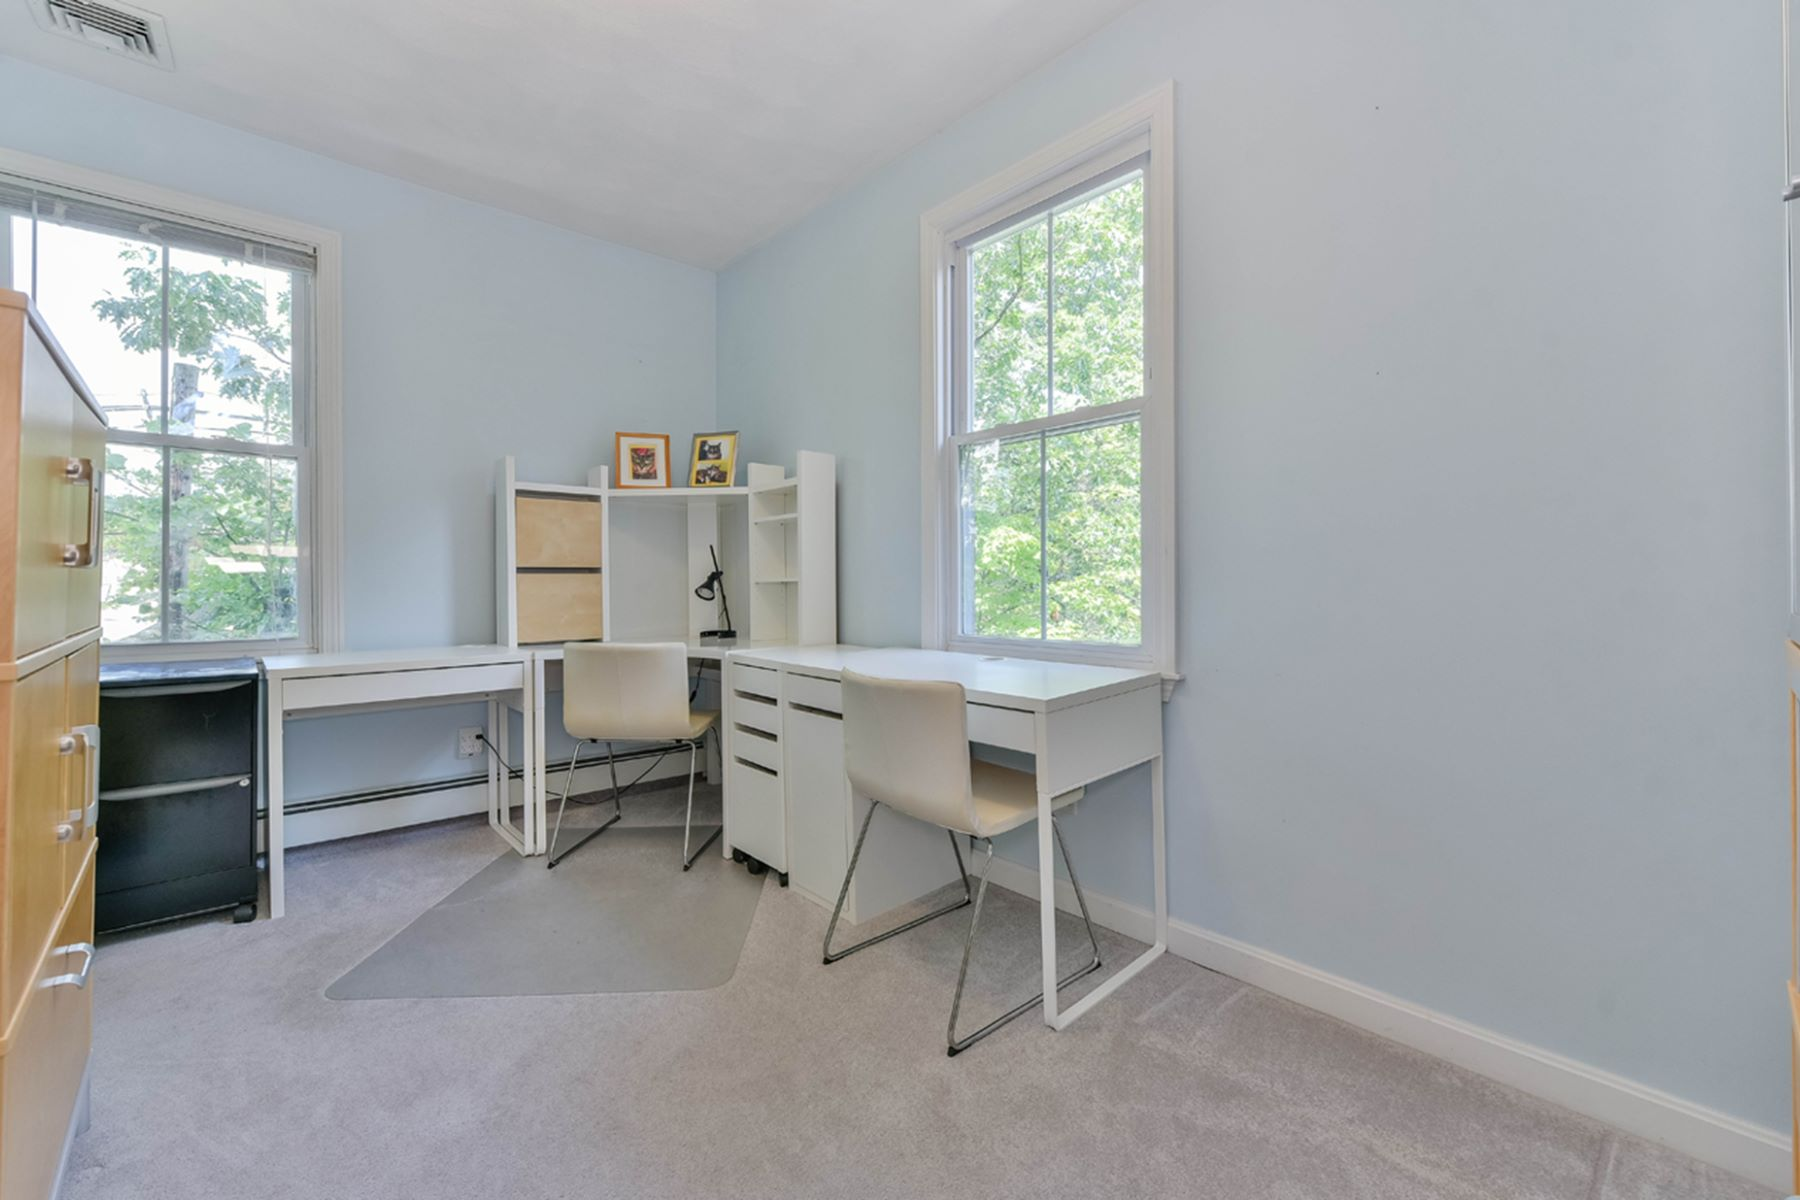 Additional photo for property listing at 6 Rockland Place 6, Newton 6 Rockland Pl 6 Newton, Massachusetts 02464 United States